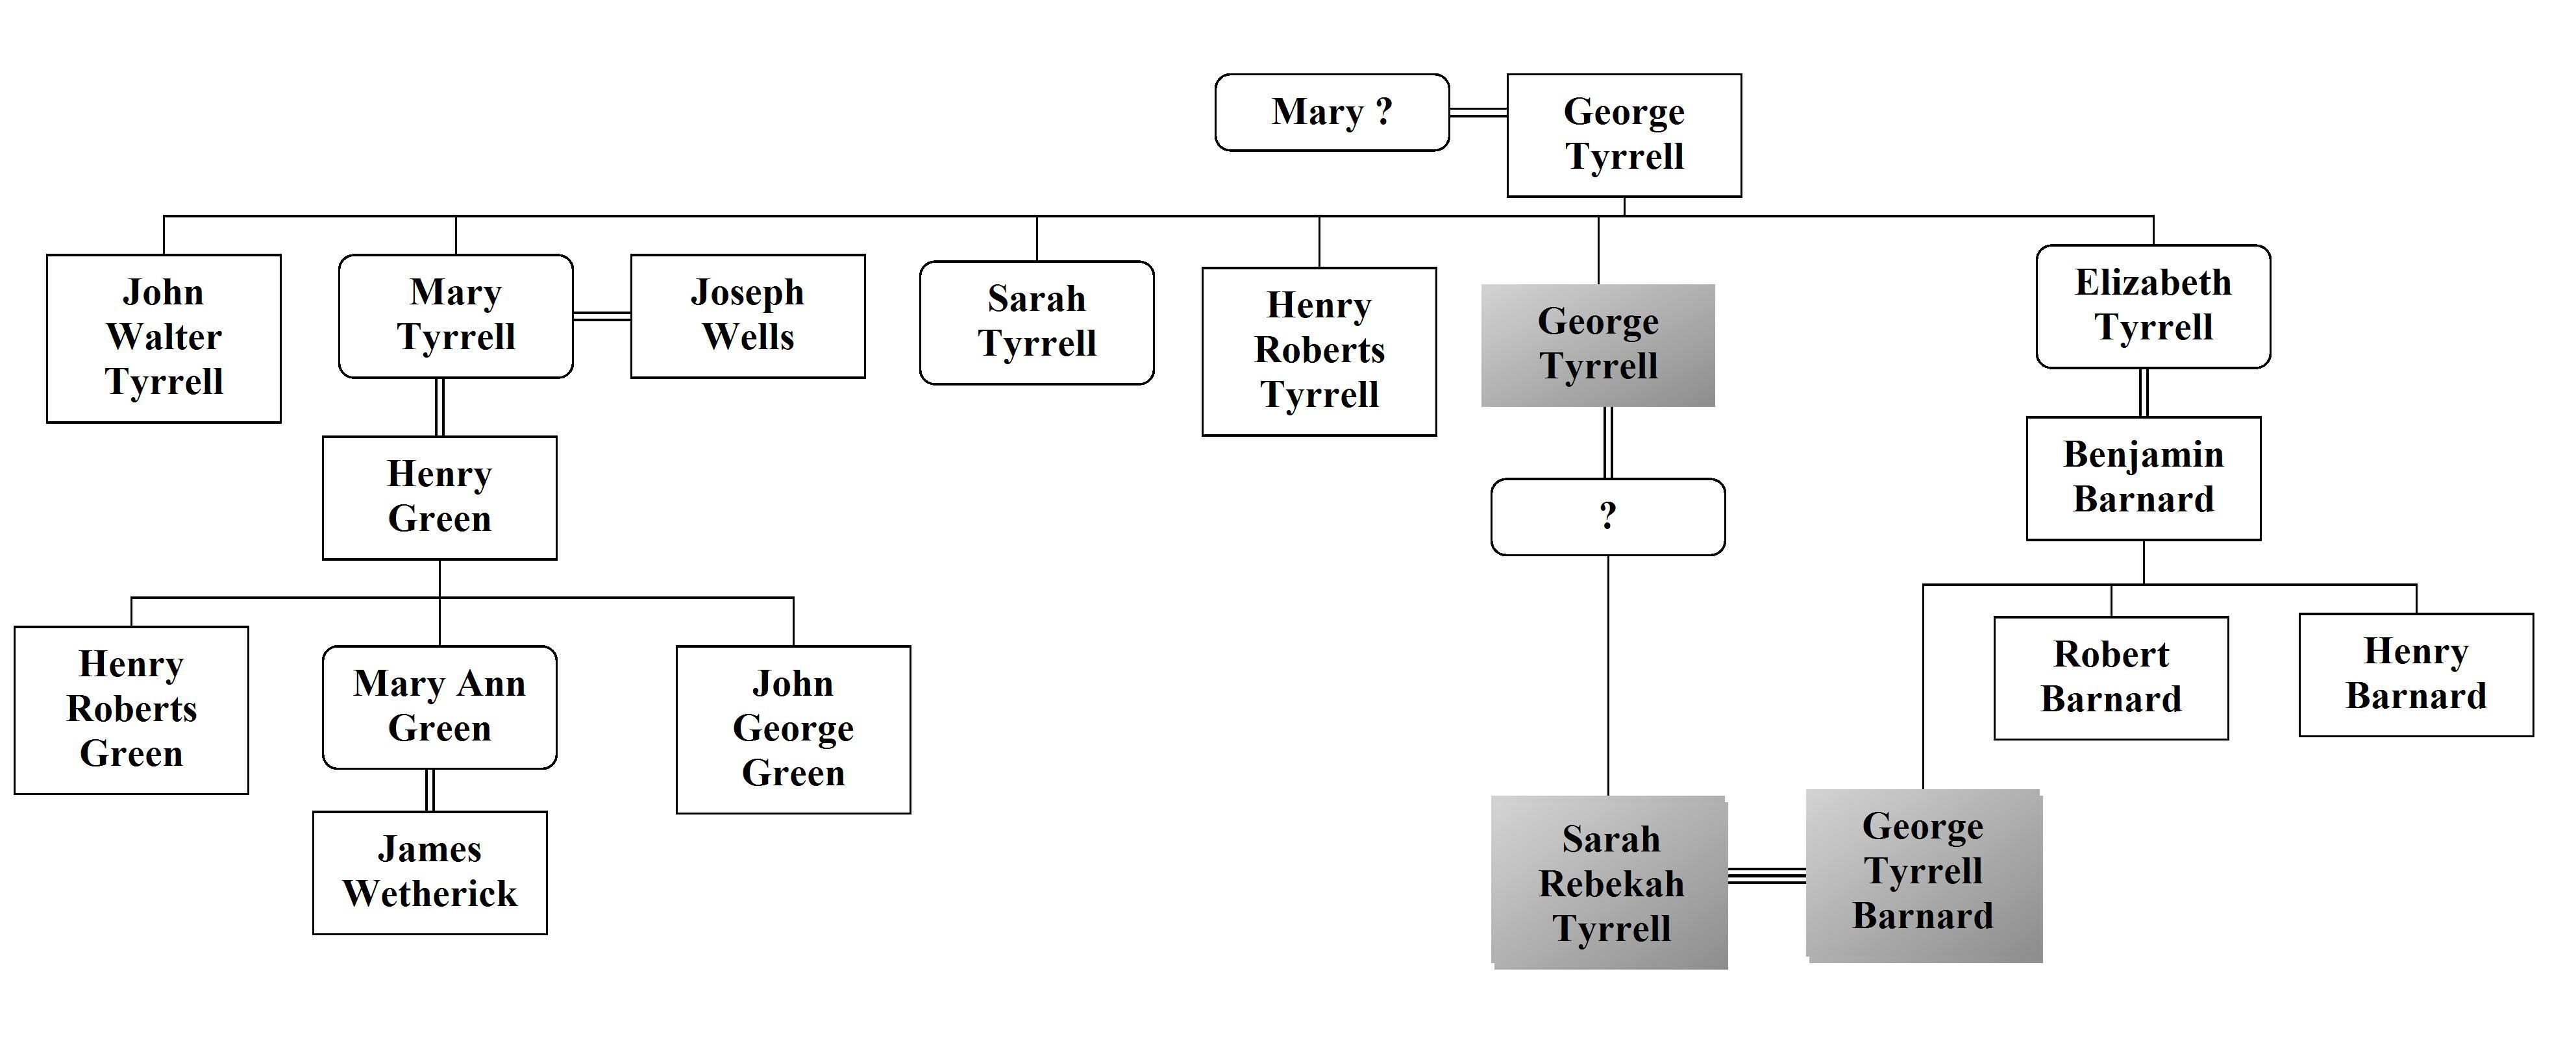 Family tree diagram maker download influencingcharismatic family tree diagram maker download ccuart Gallery